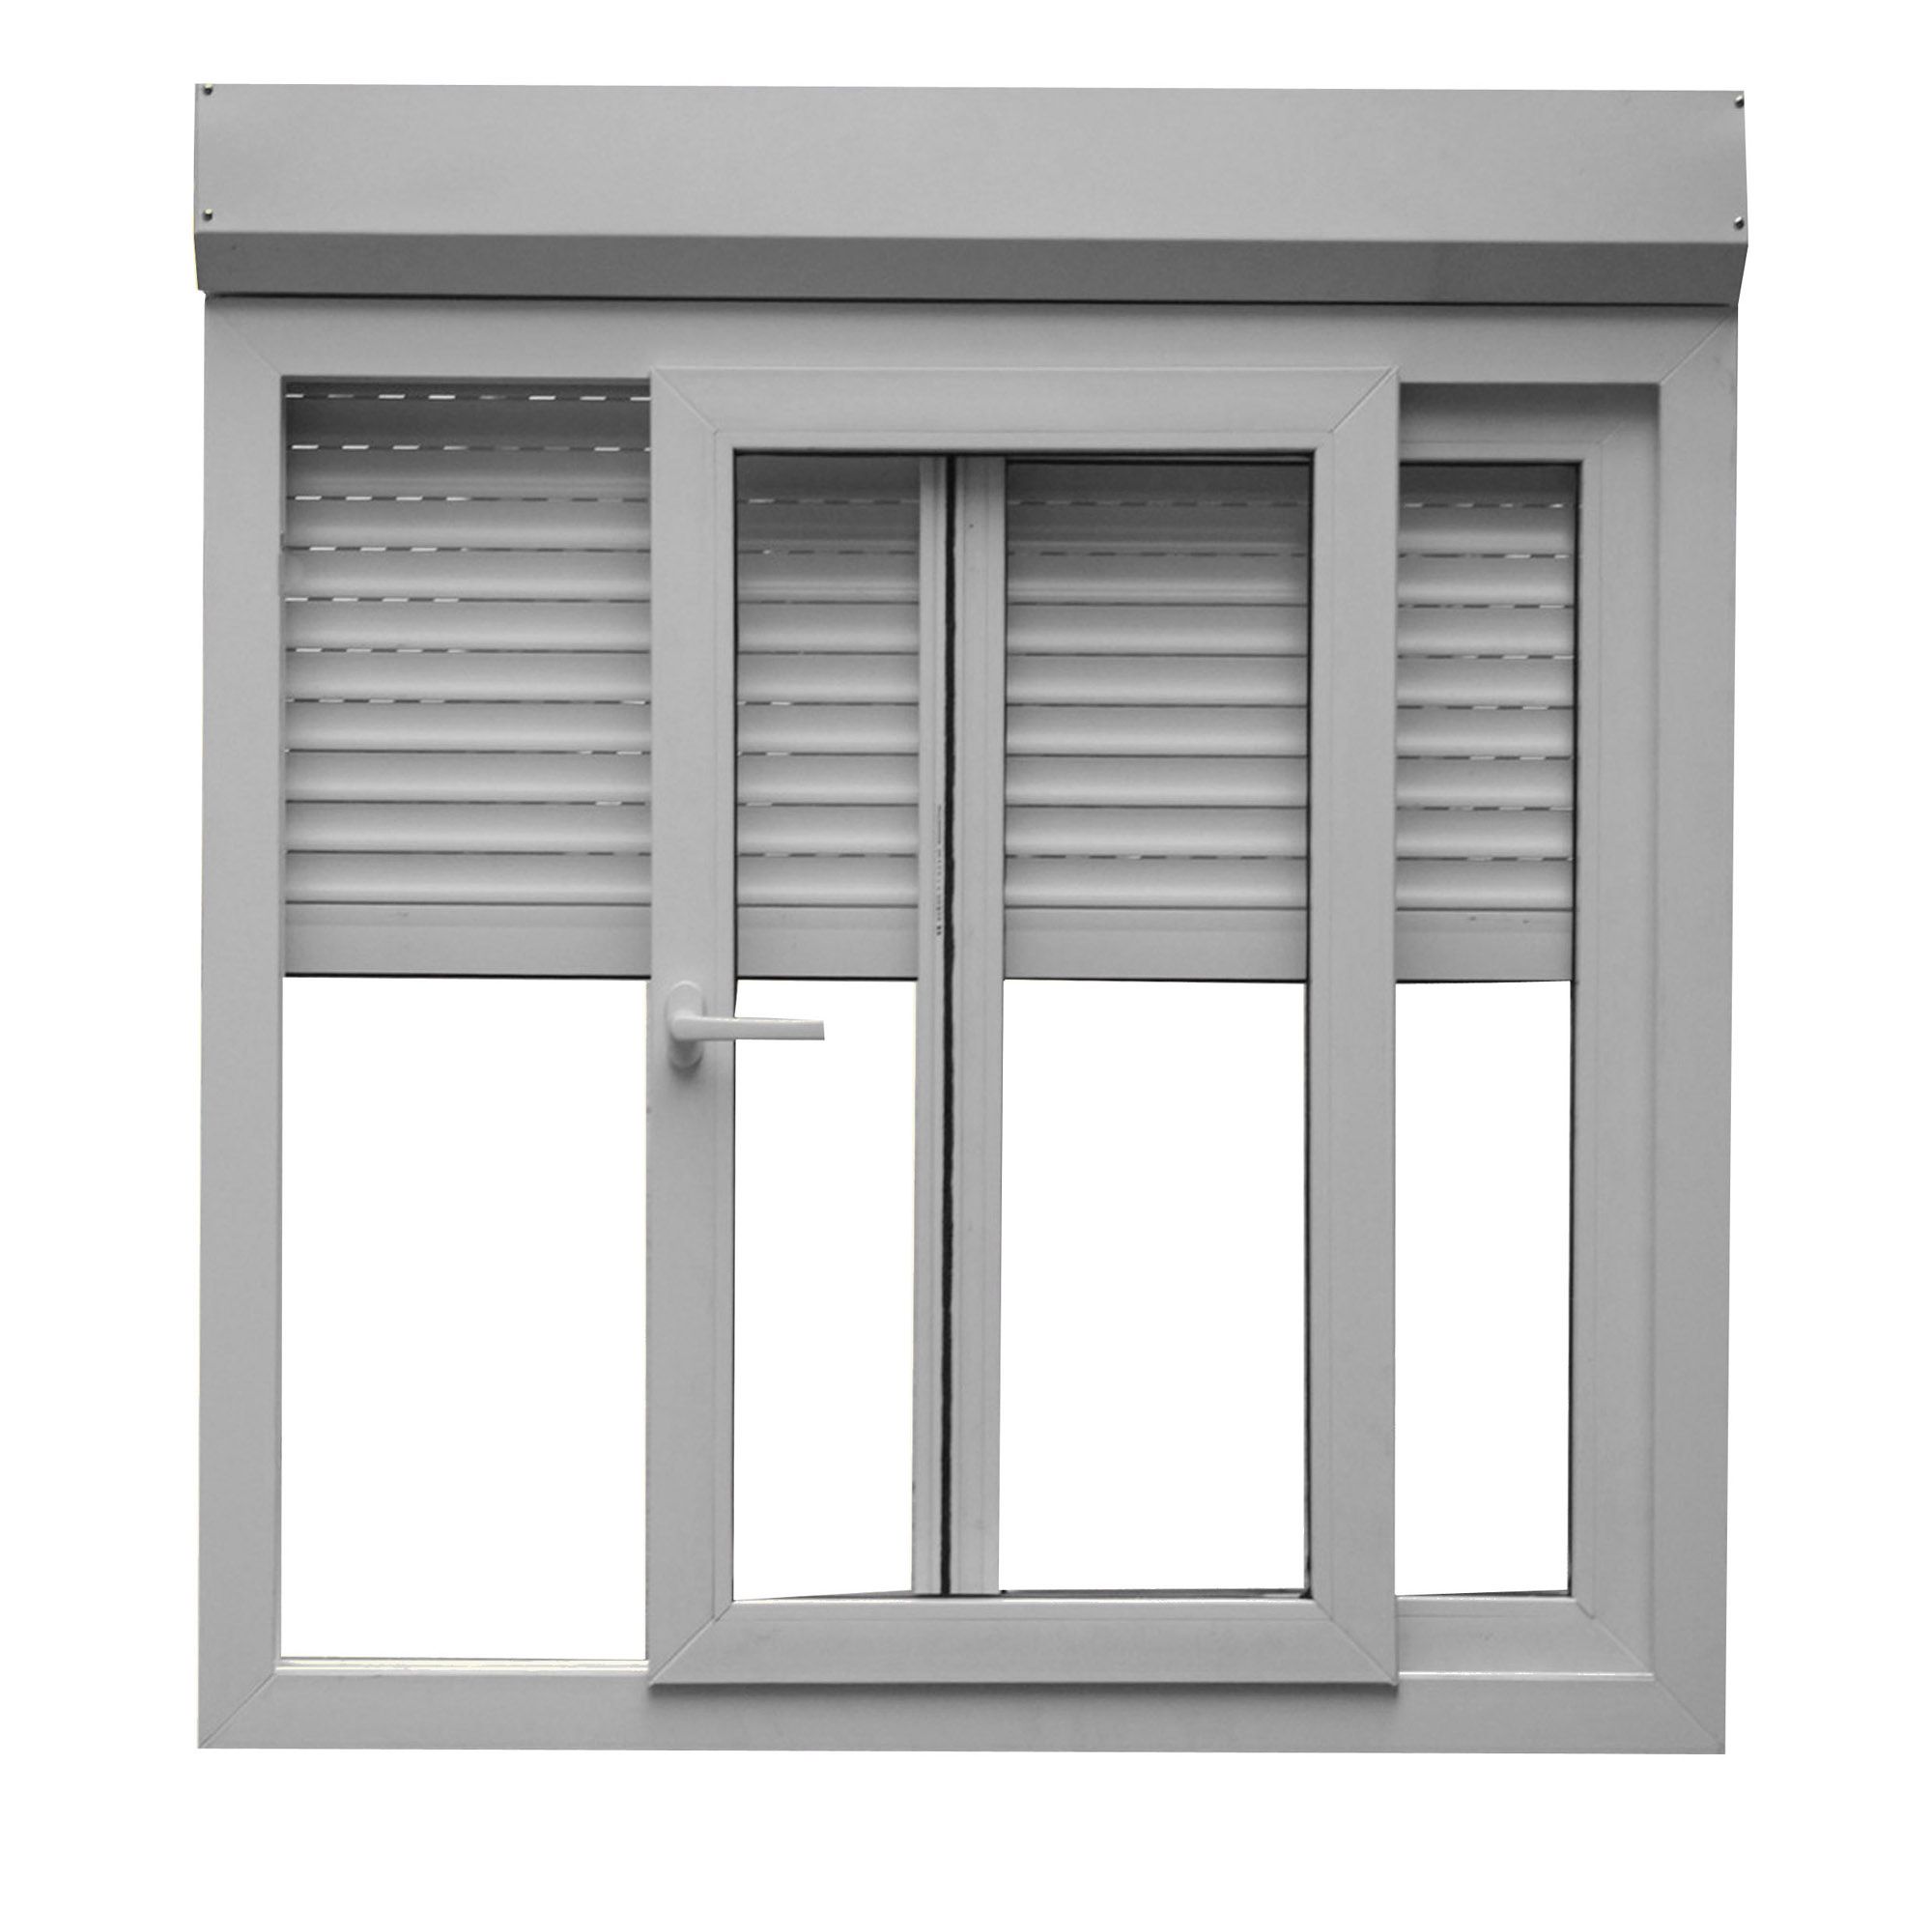 Aluminum Frame Sliding Window Aluminum Window Double